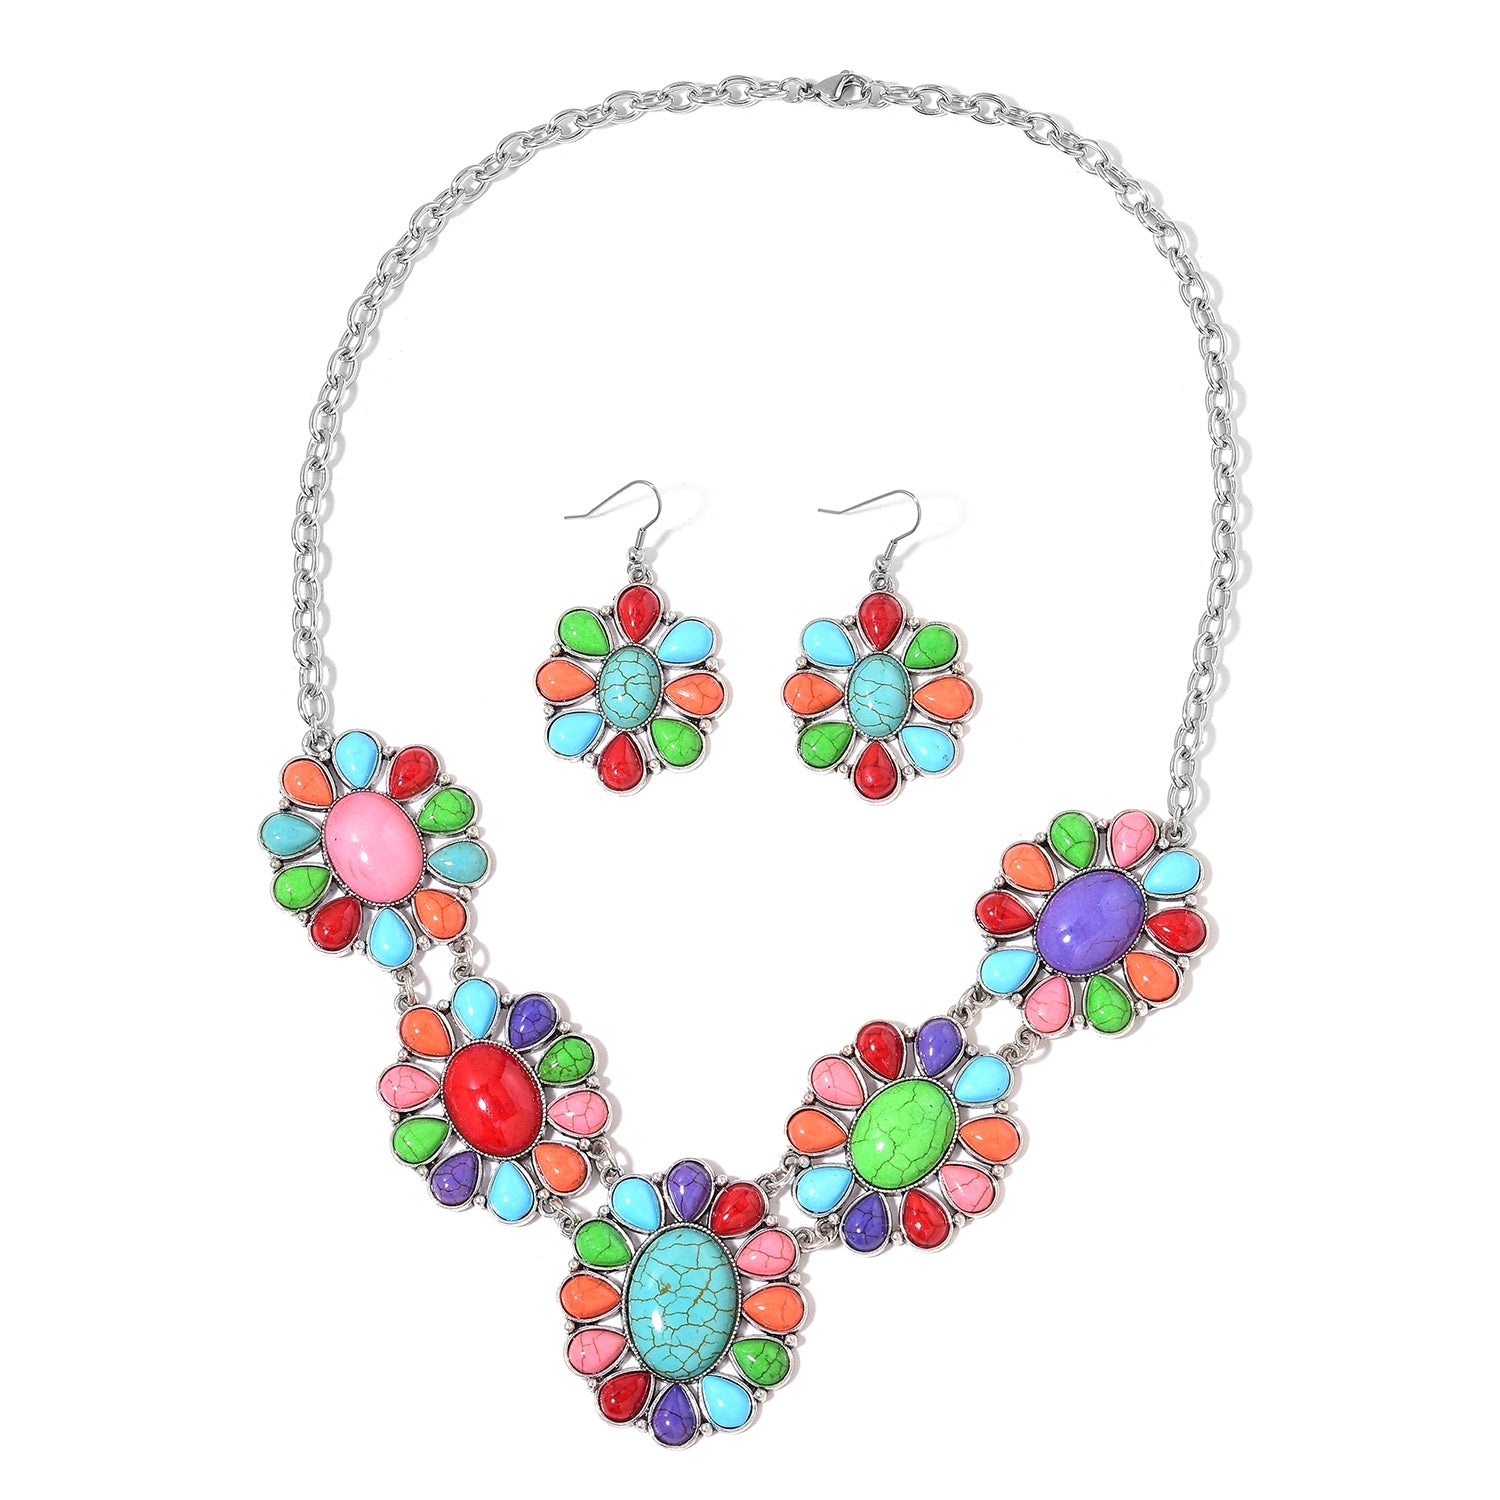 Multi-Color Garland of Daisy Flowers Howlite Stainless-Steel Earrings and Bib Style Necklace TGW 264.00 cts - Houzz of DVA Boutique